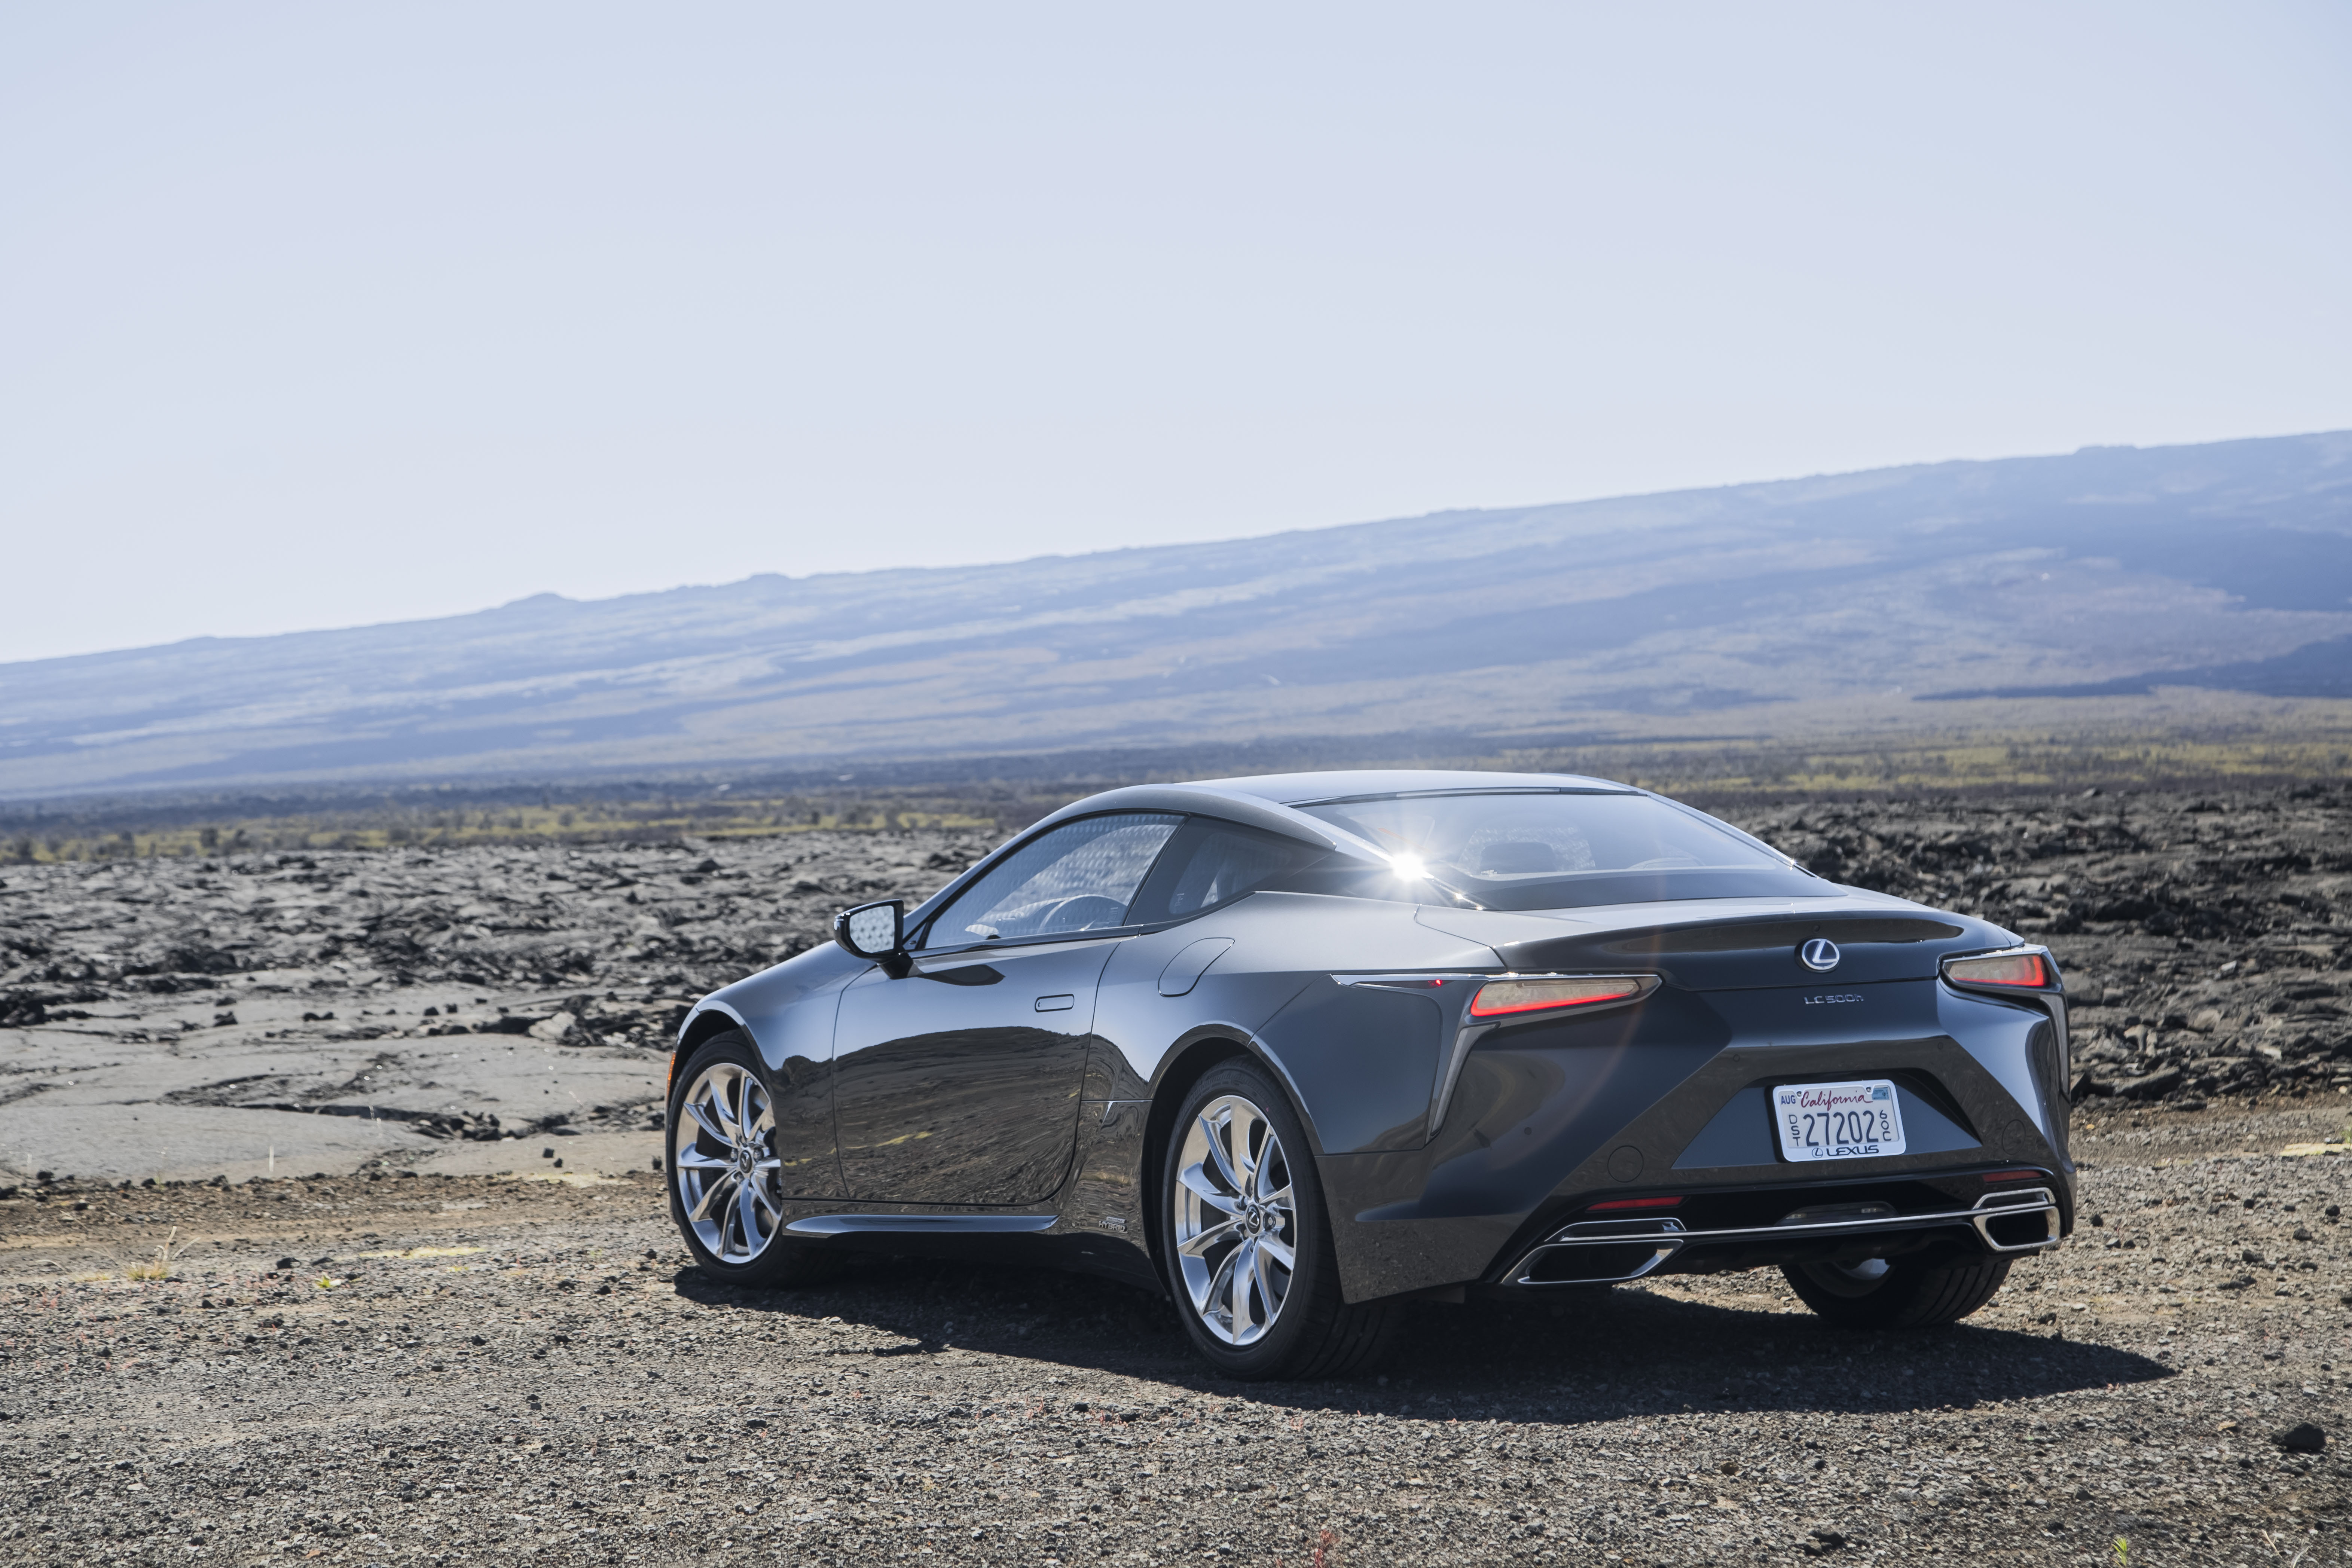 Lexus LC 500h accessories model